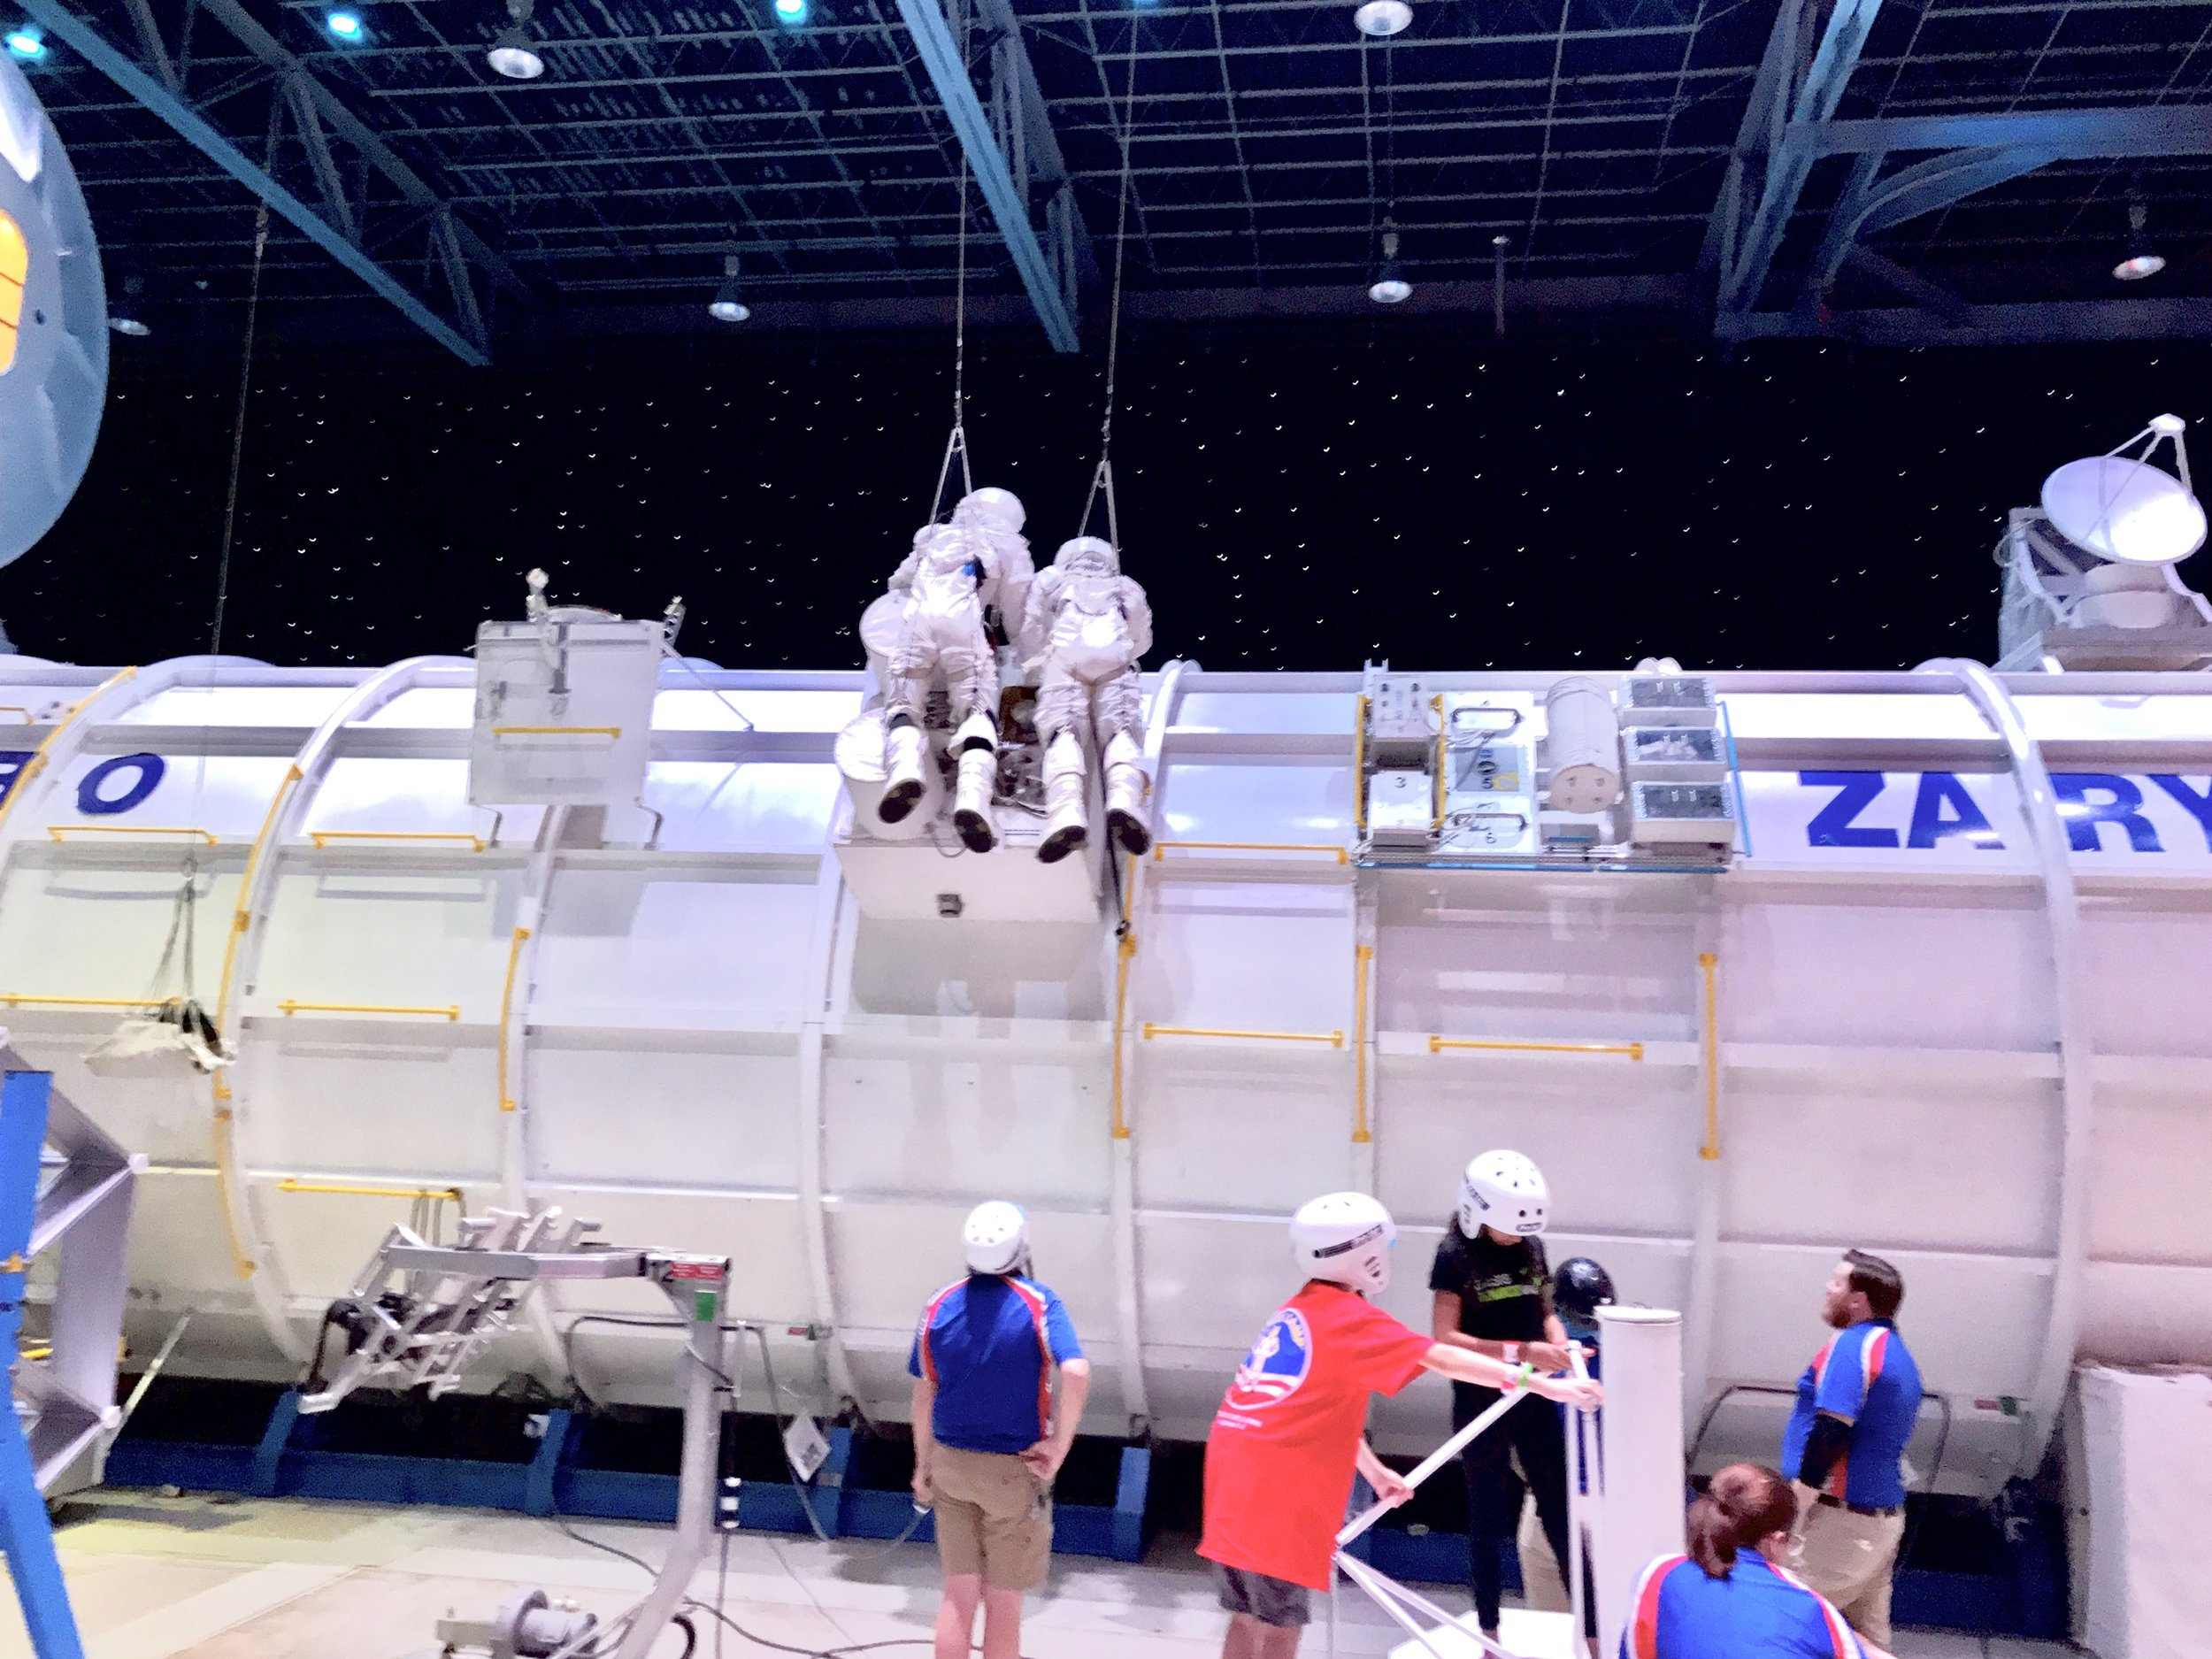 Kids at space camp get to do incredible things. Obviously, the two at the top of the photo are simulating a space walk. They also get to experience near-zero gravity in a large diving tank. Rebecca LaChance, 2017.